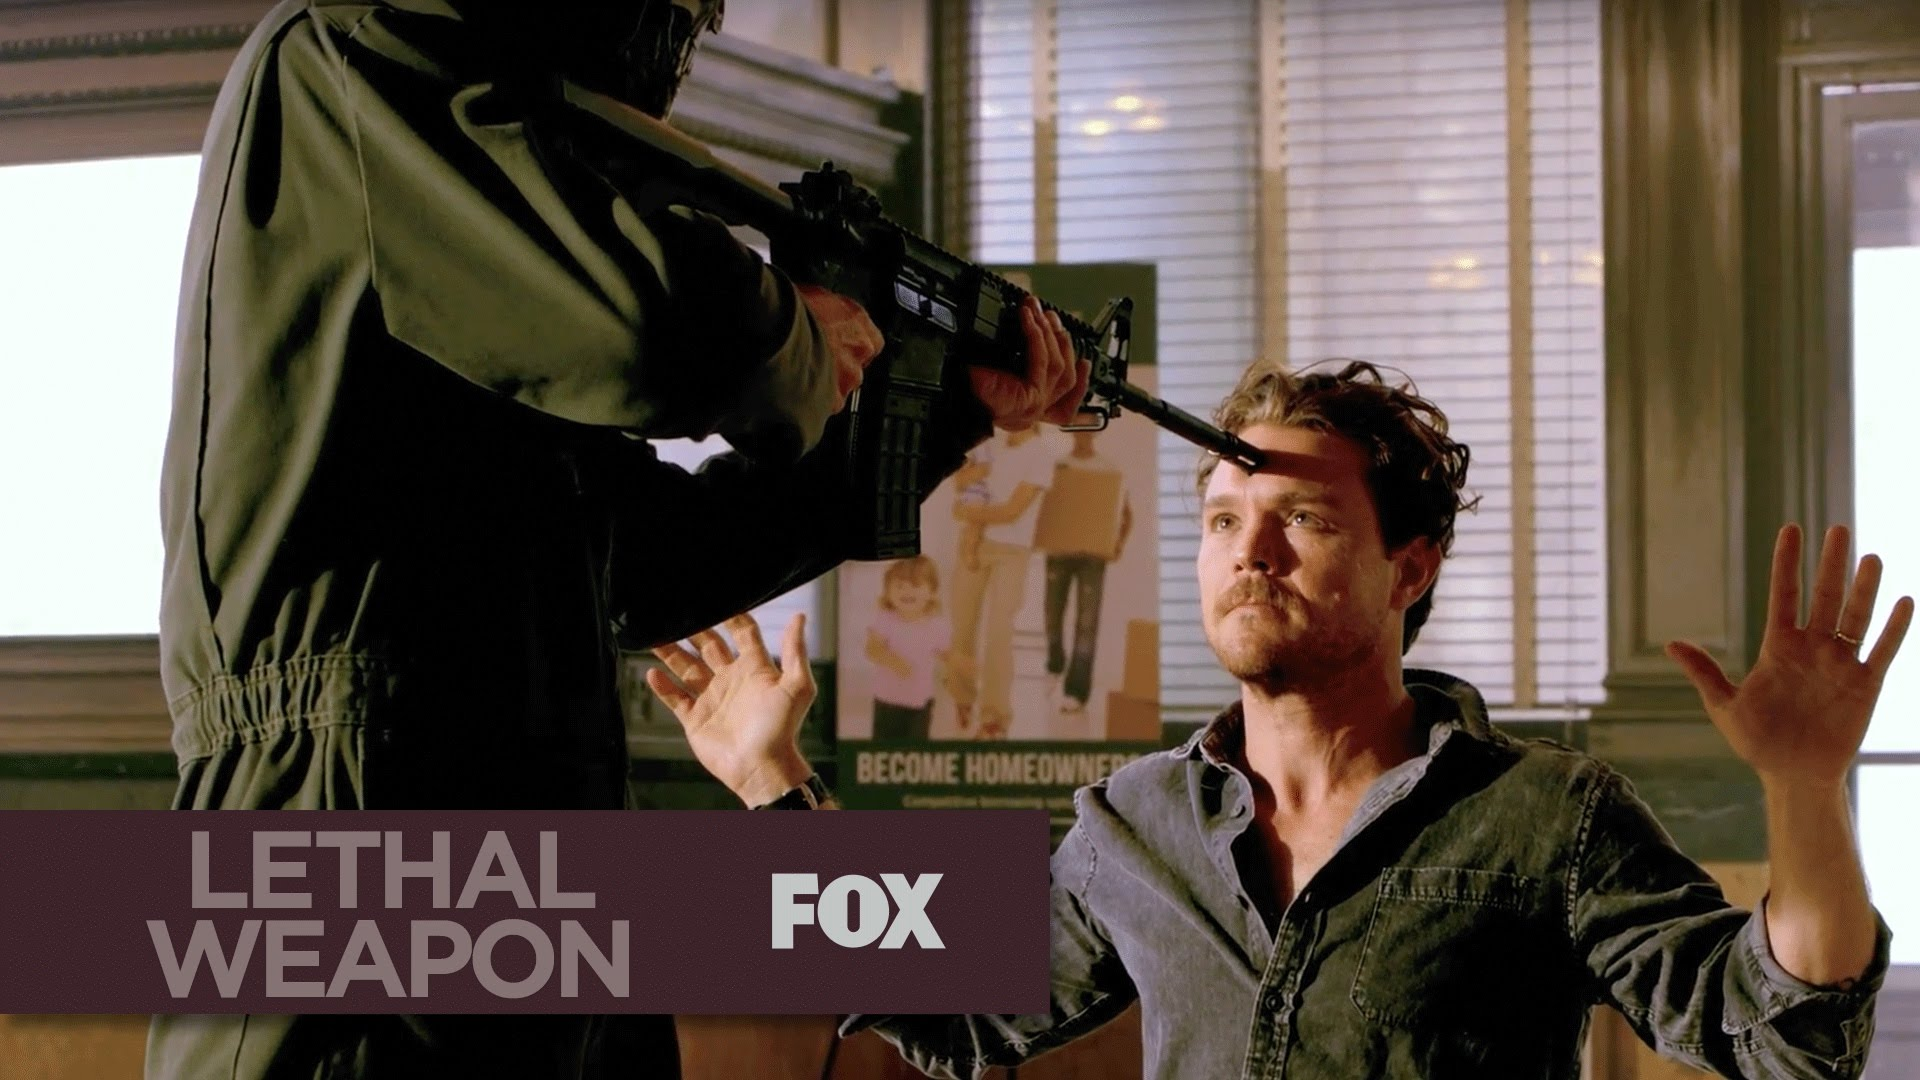 Trailer: LETHAL WEAPON